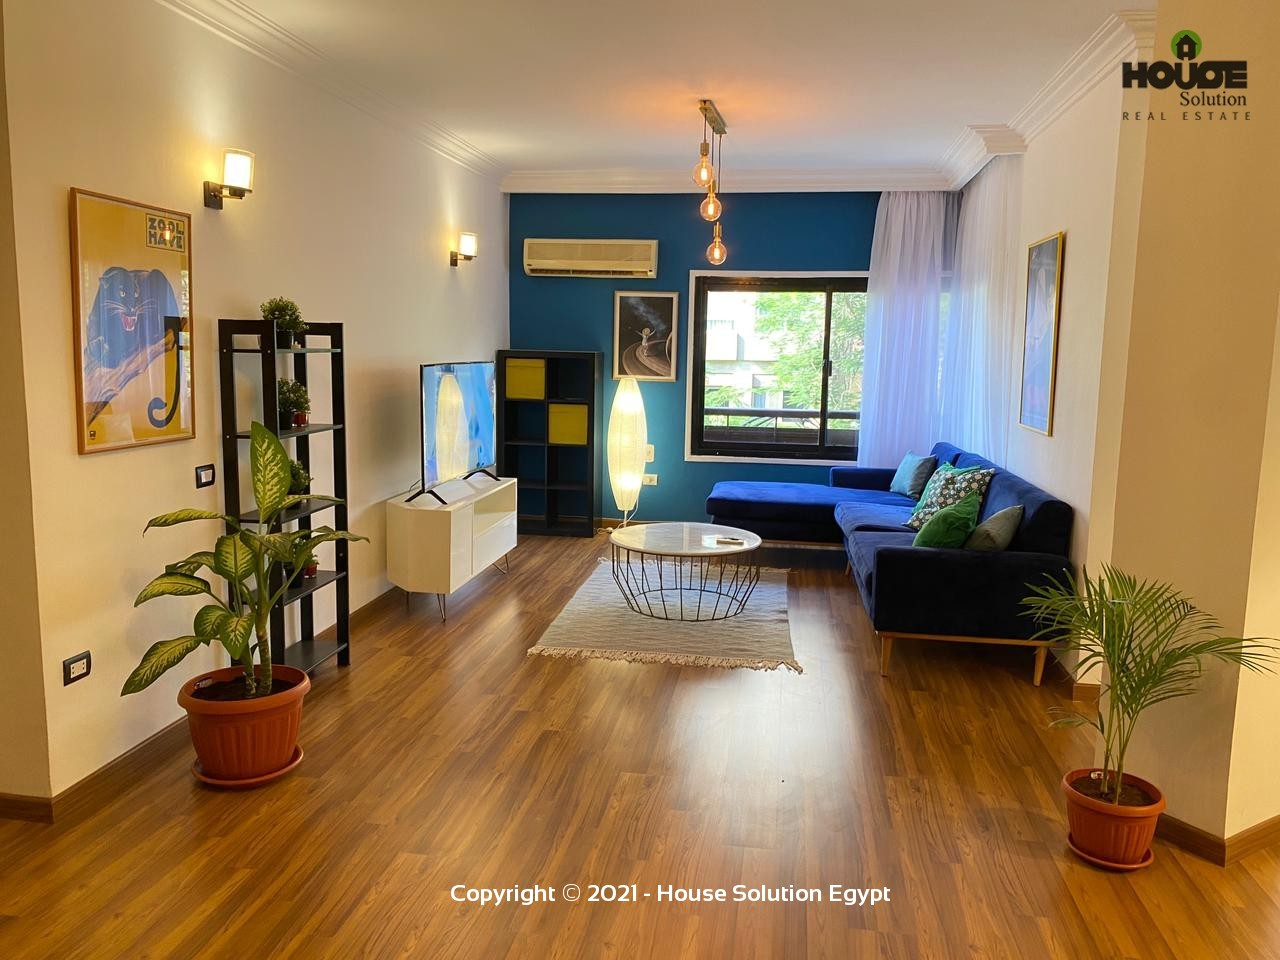 Brand New Modern Furnished Apartment For Rent In Degla El Maadi Next To Cairo American College (C.a.c.) - 5030 Featured Image